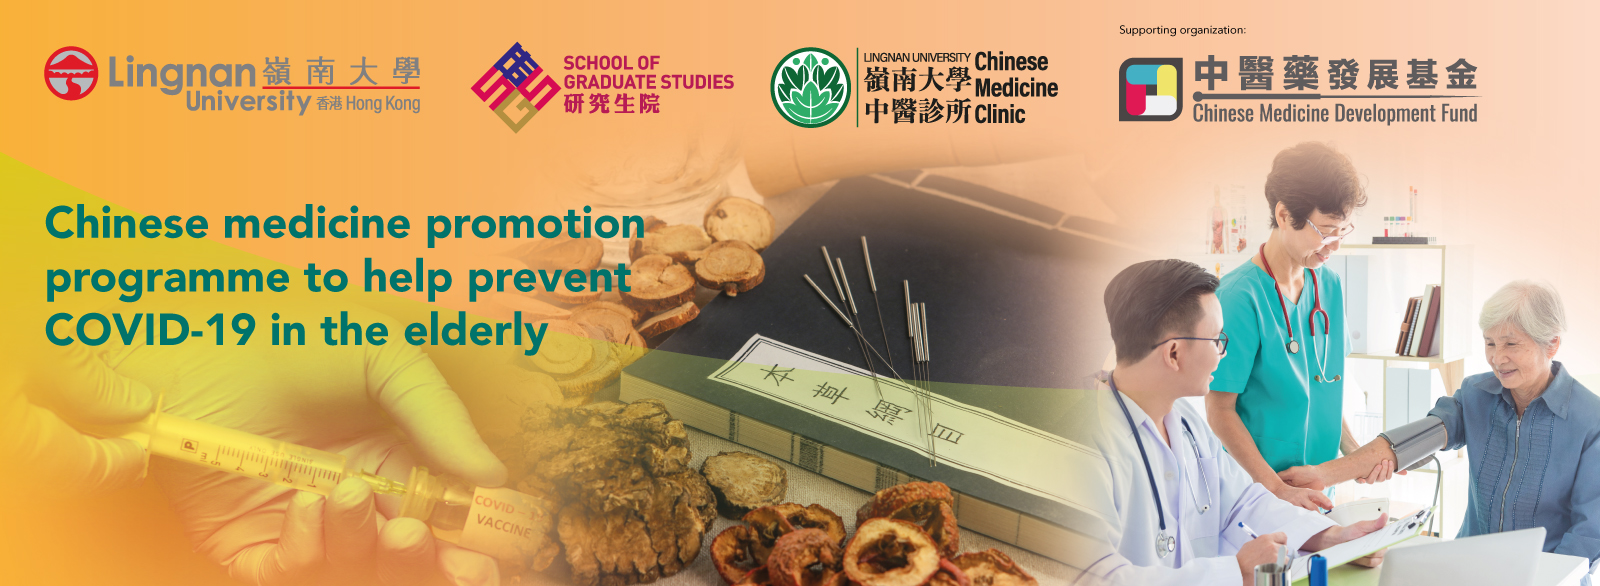 Chinese medicine promotion programme to help prevent COVID-19 in the elderly